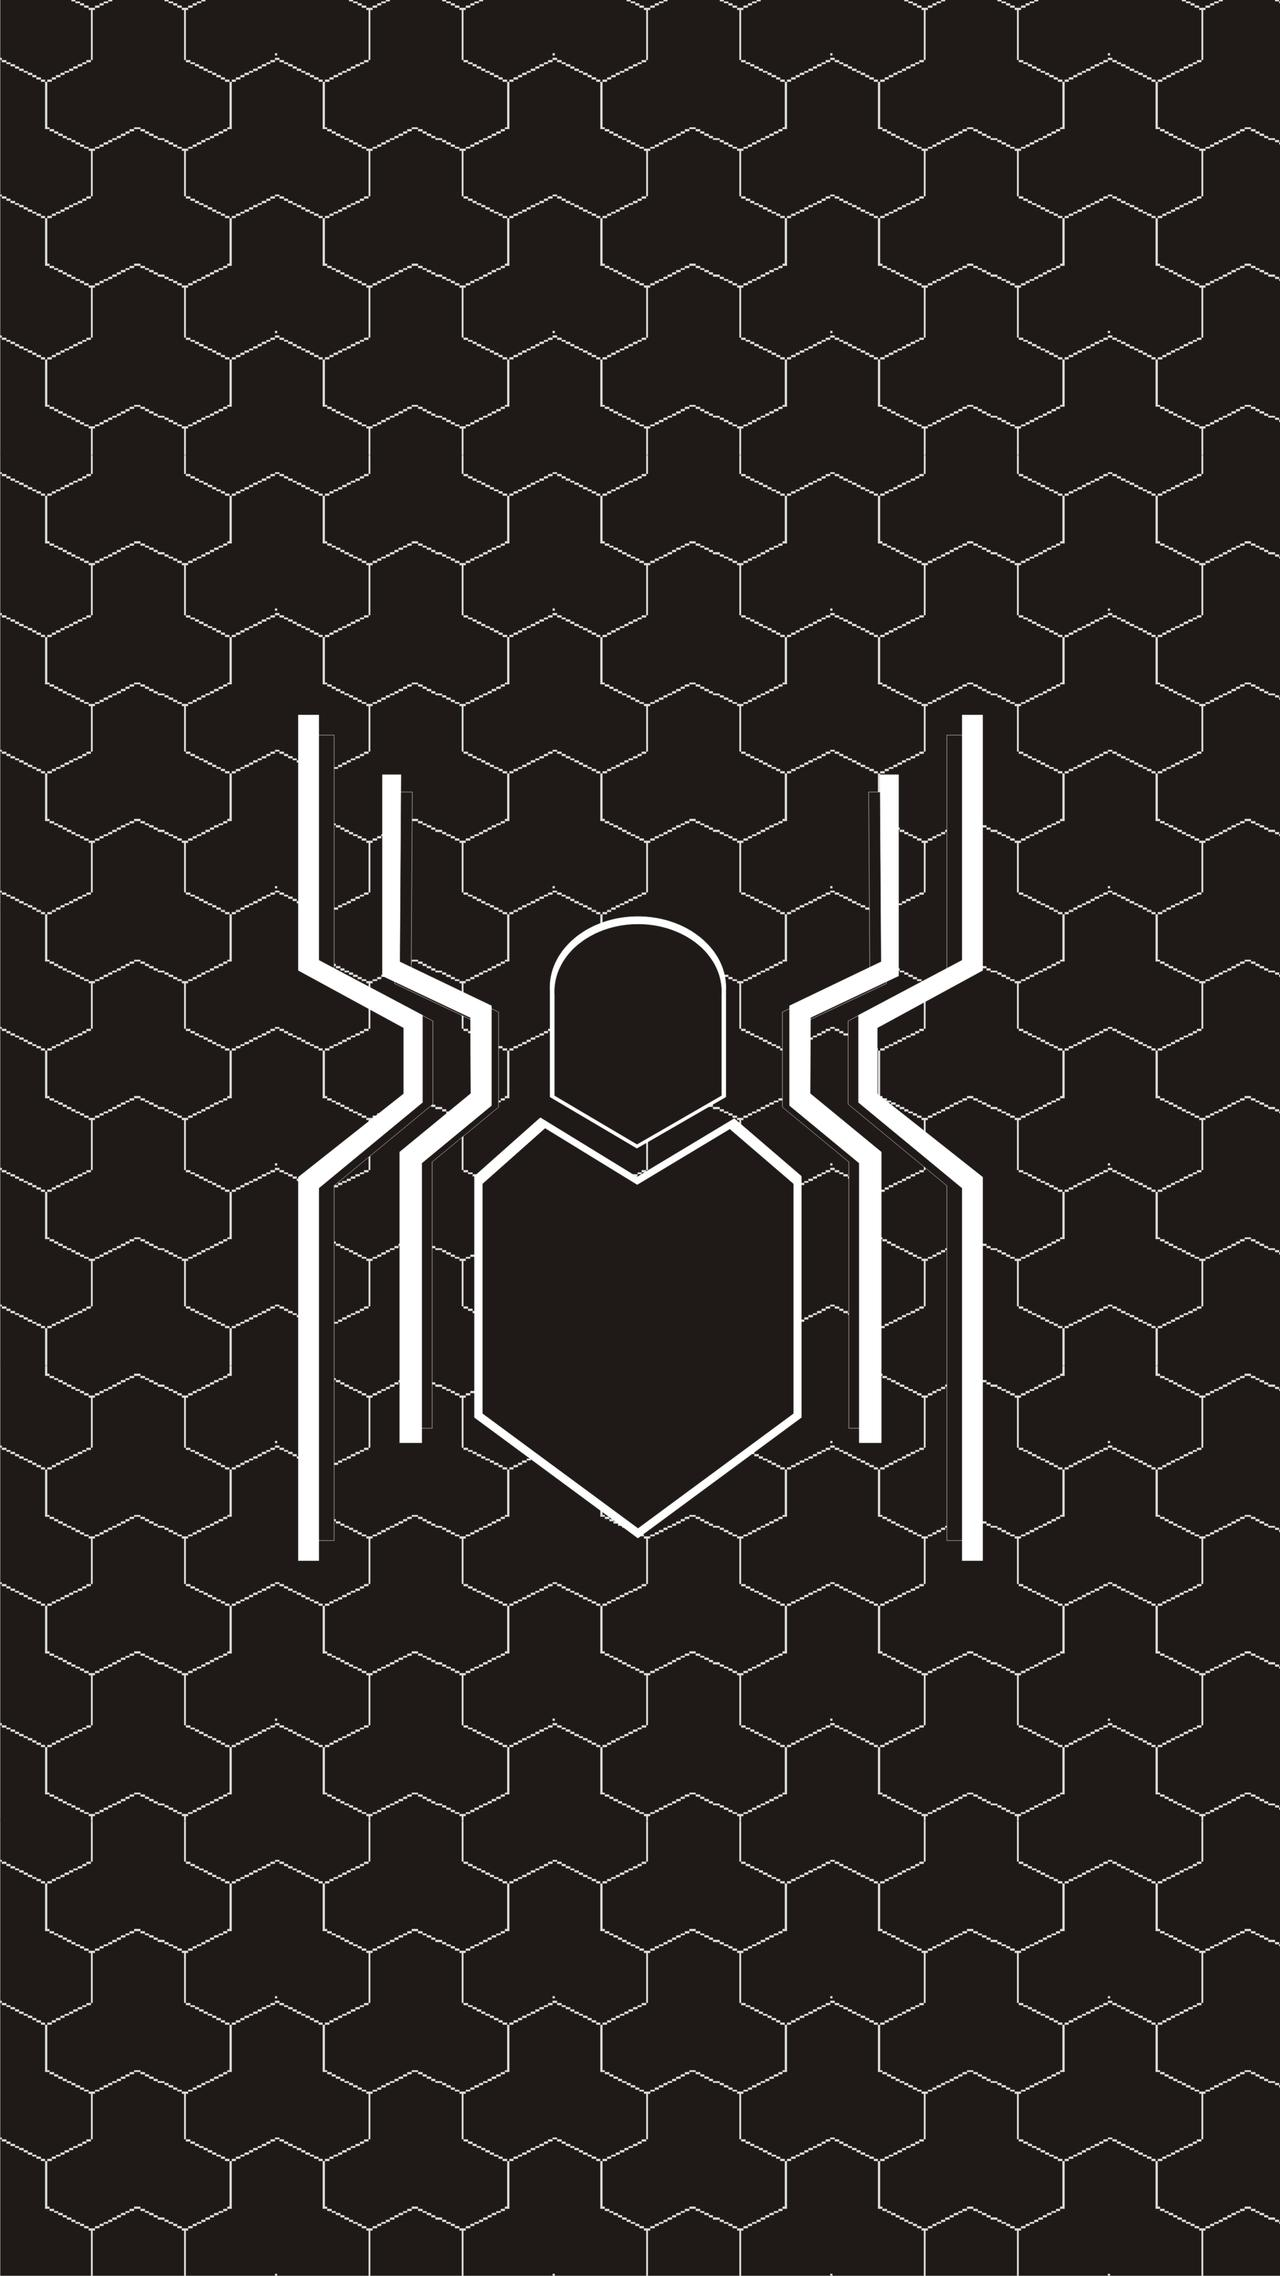 Spiderman Wallpaper Logo Posted By Ethan Johnson